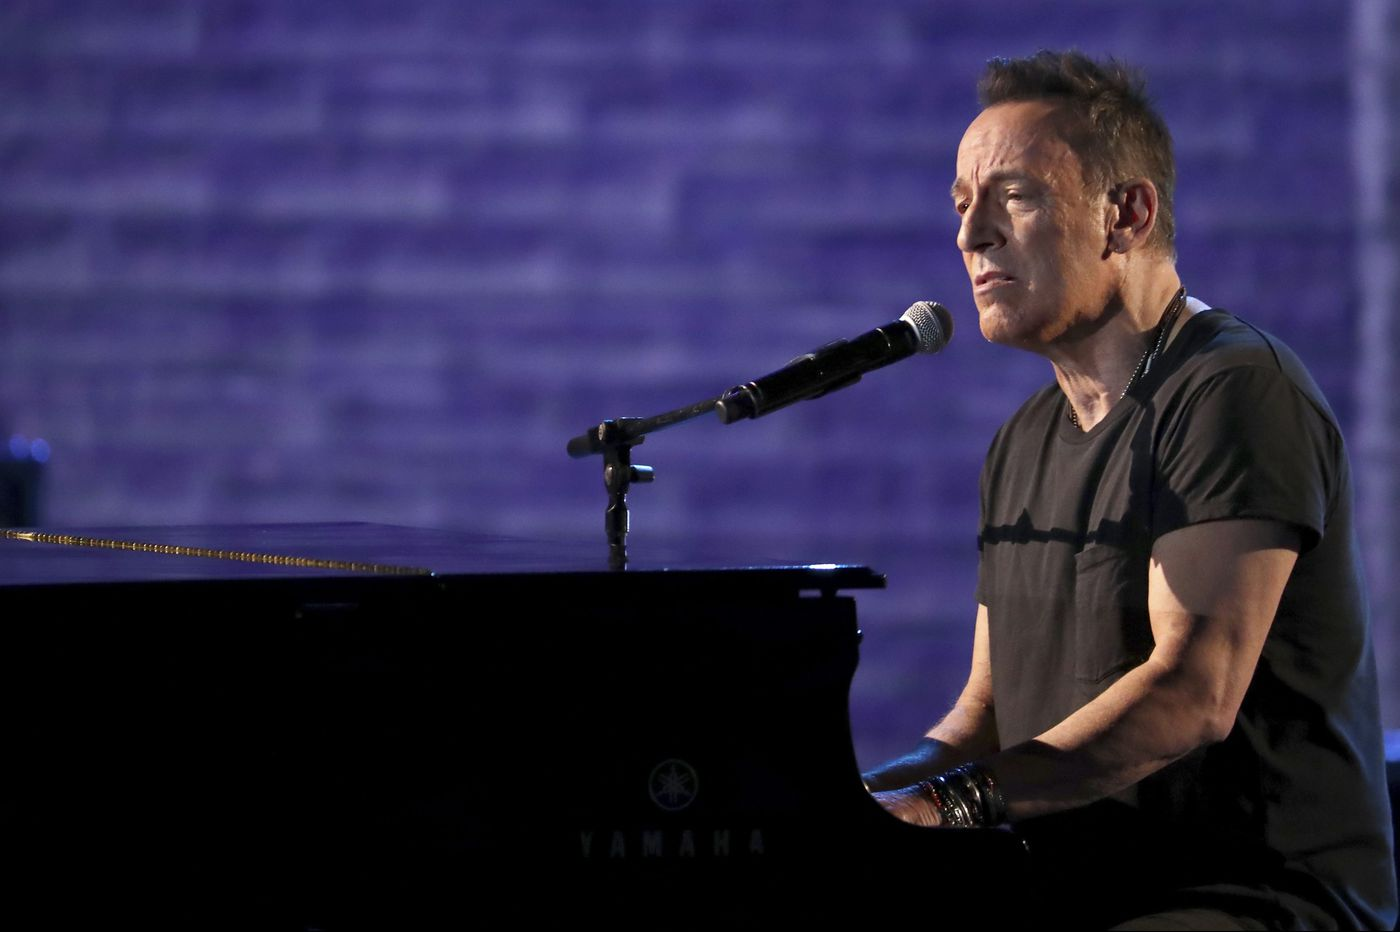 Bruce Springsteen's Tony Awards performance upset some Broadway fans on Twitter